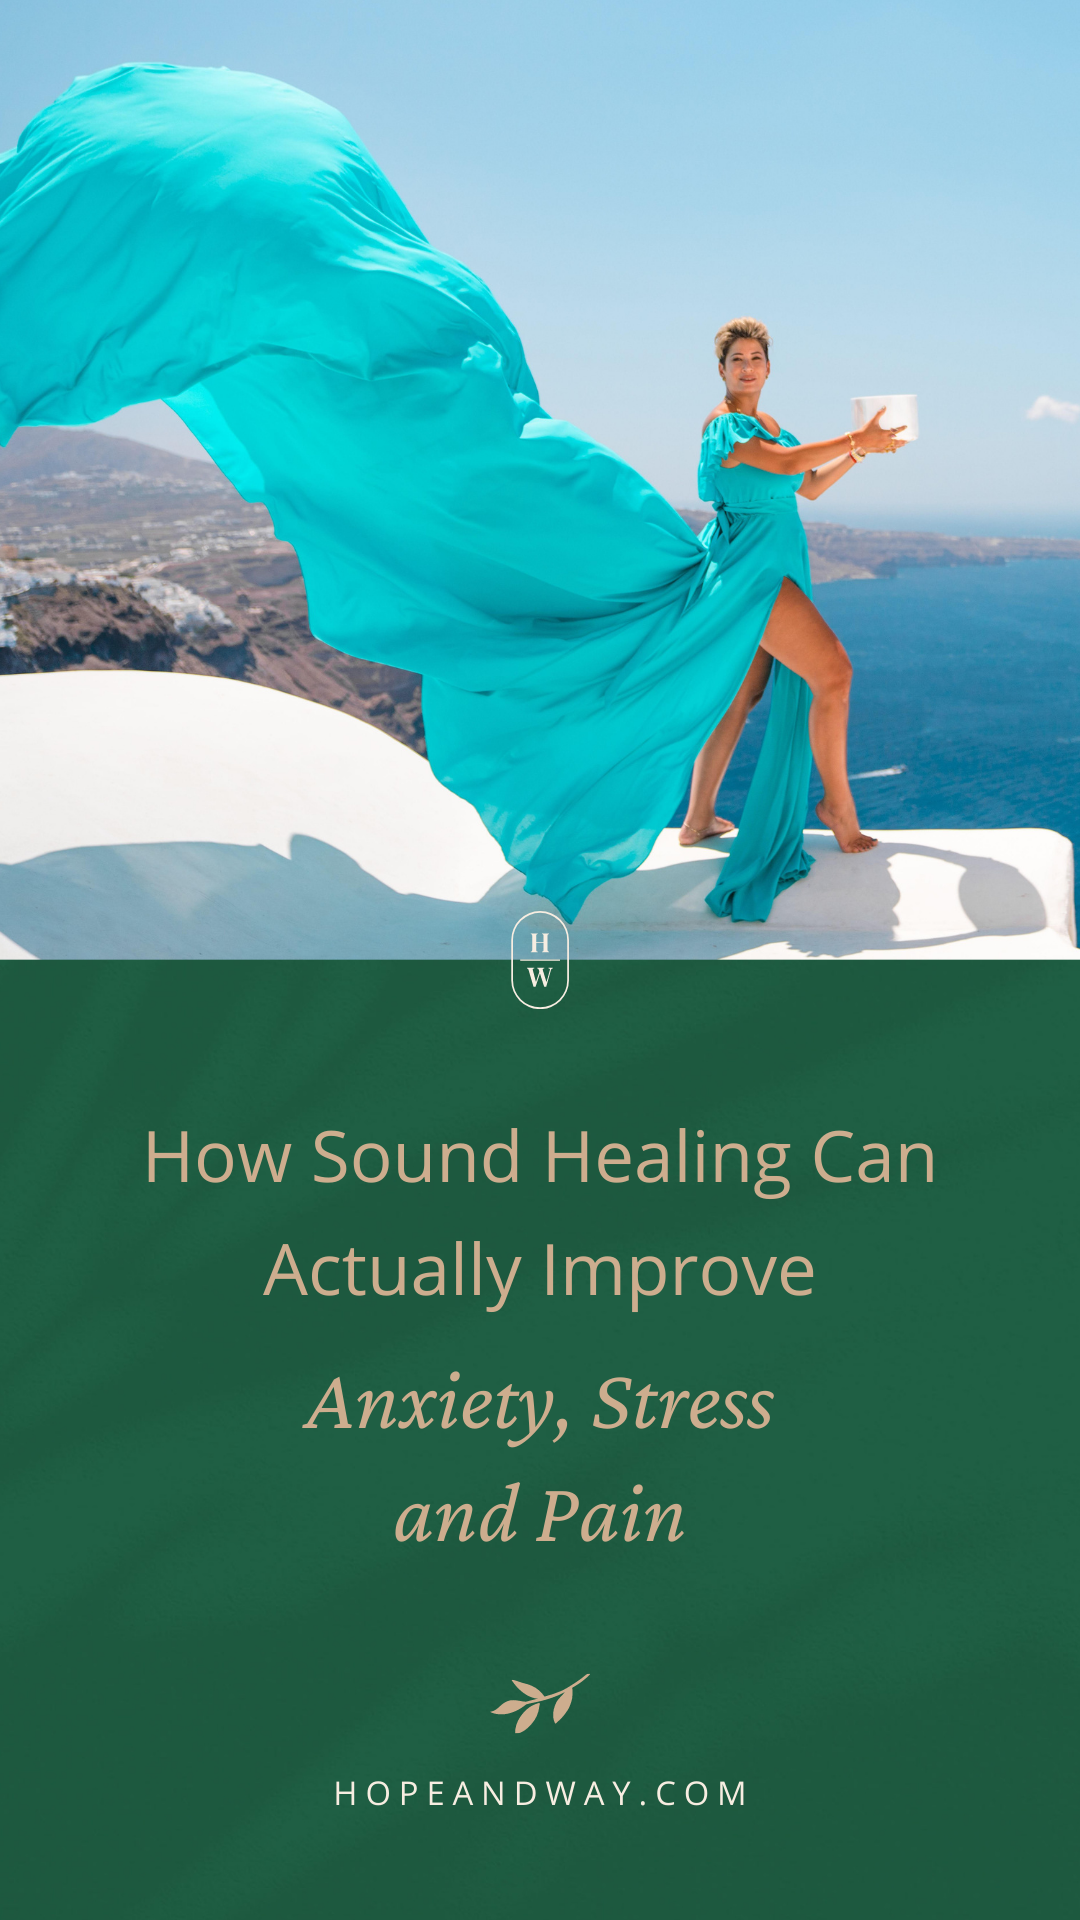 How Sound Healing Can Actually Improve Anxiety, Stress and Pain – Interview with Rocio Ferdman